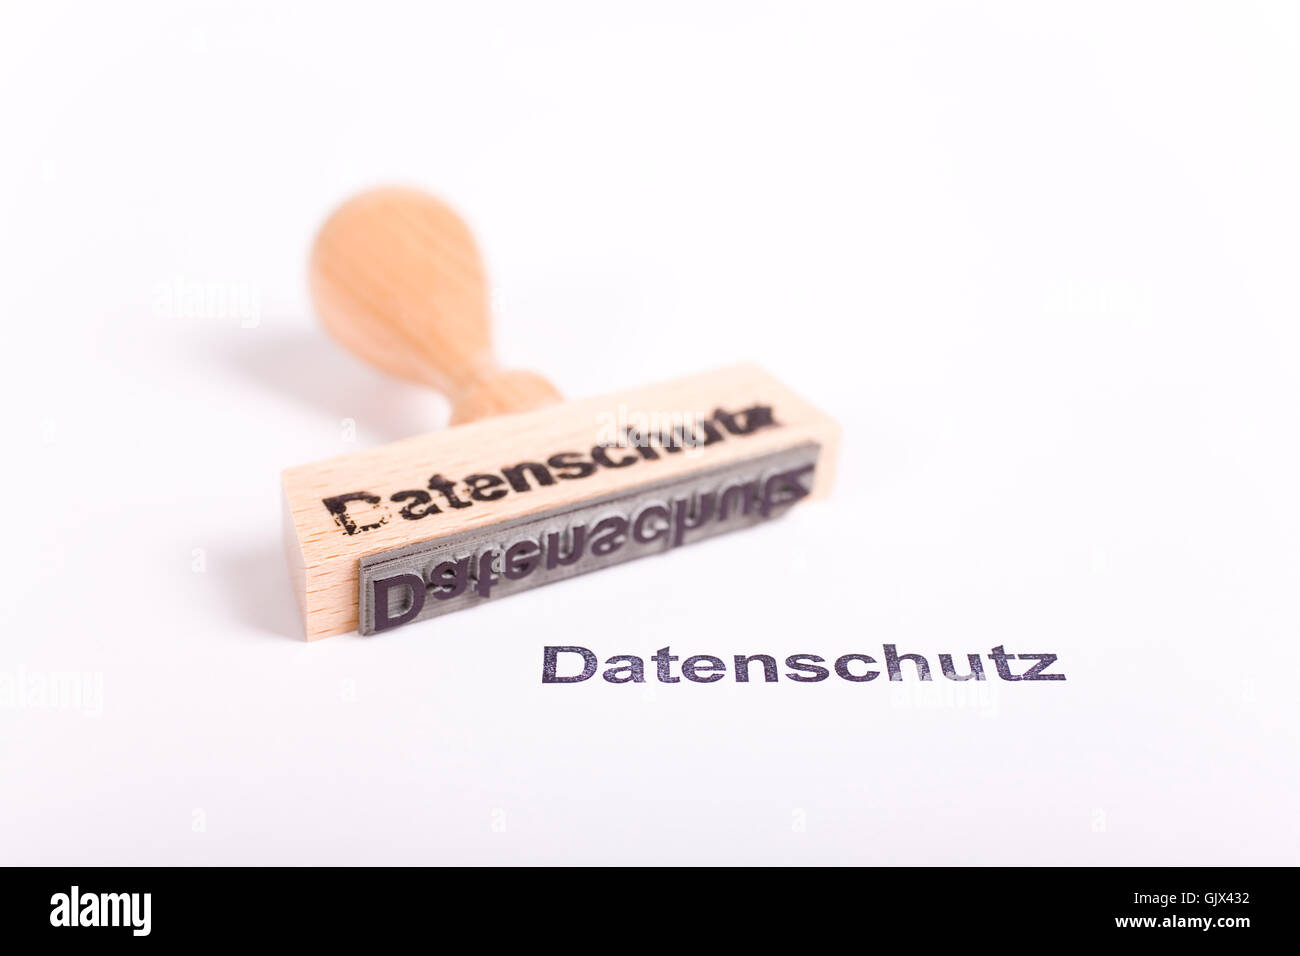 word stamp business dealings Stock Photo